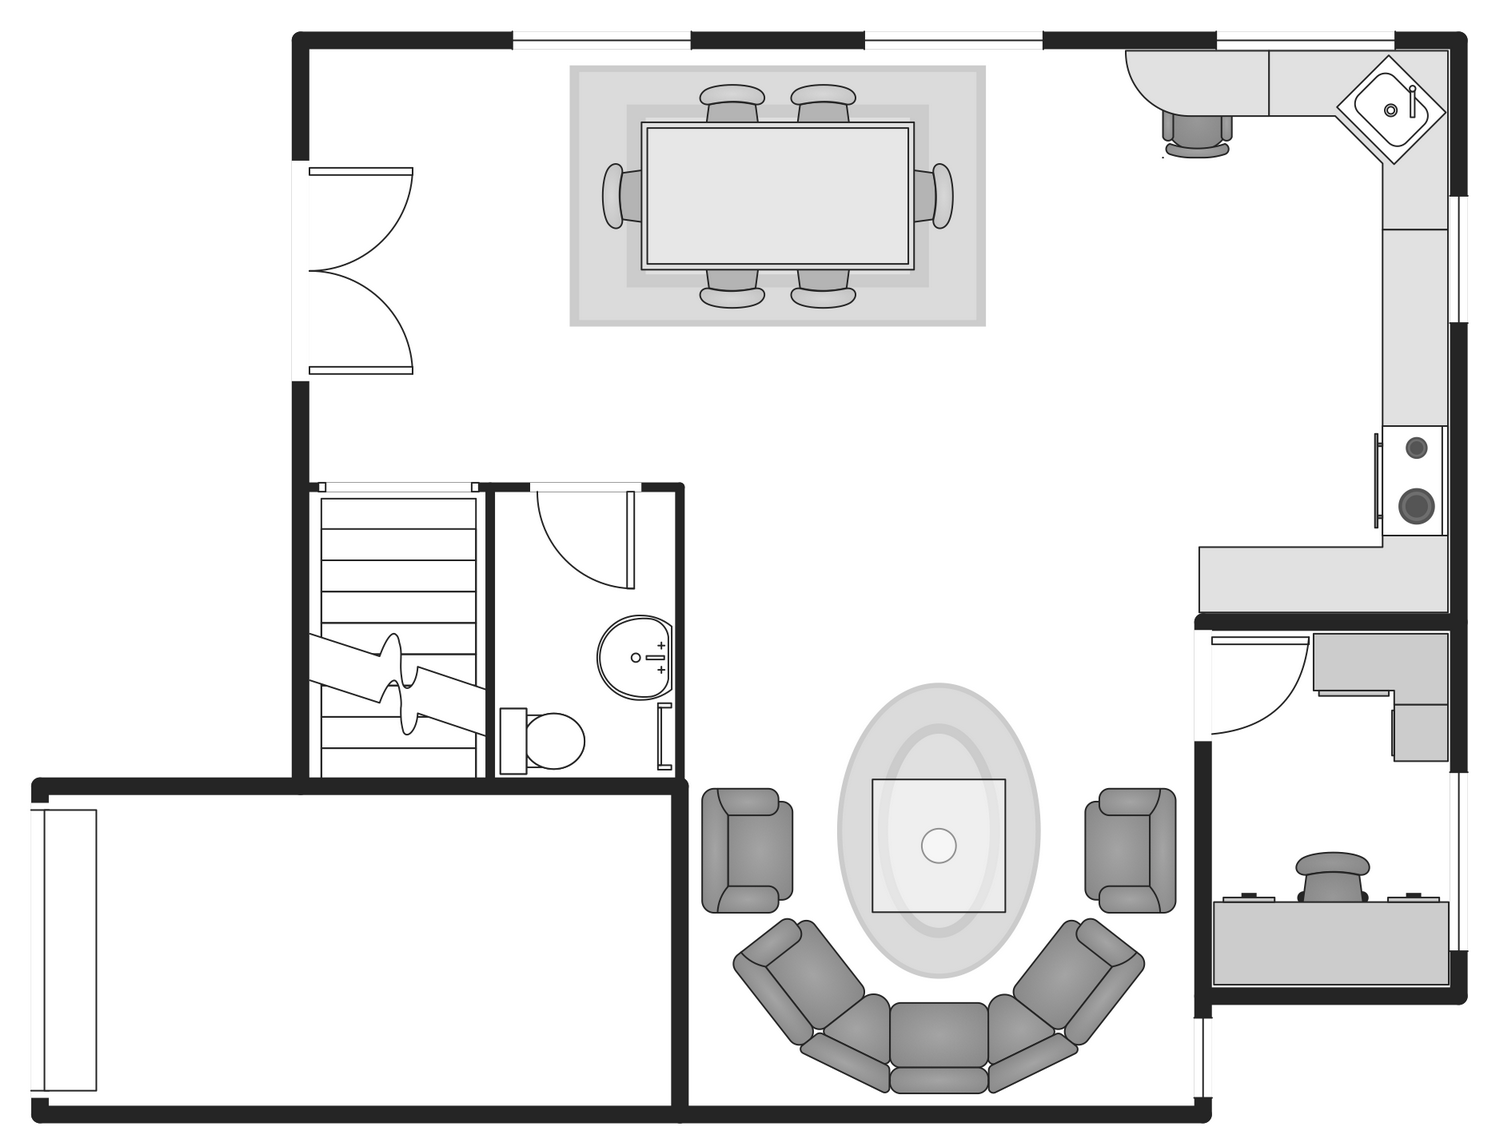 New basic floor plans solution for complete building design for Basic design house plans